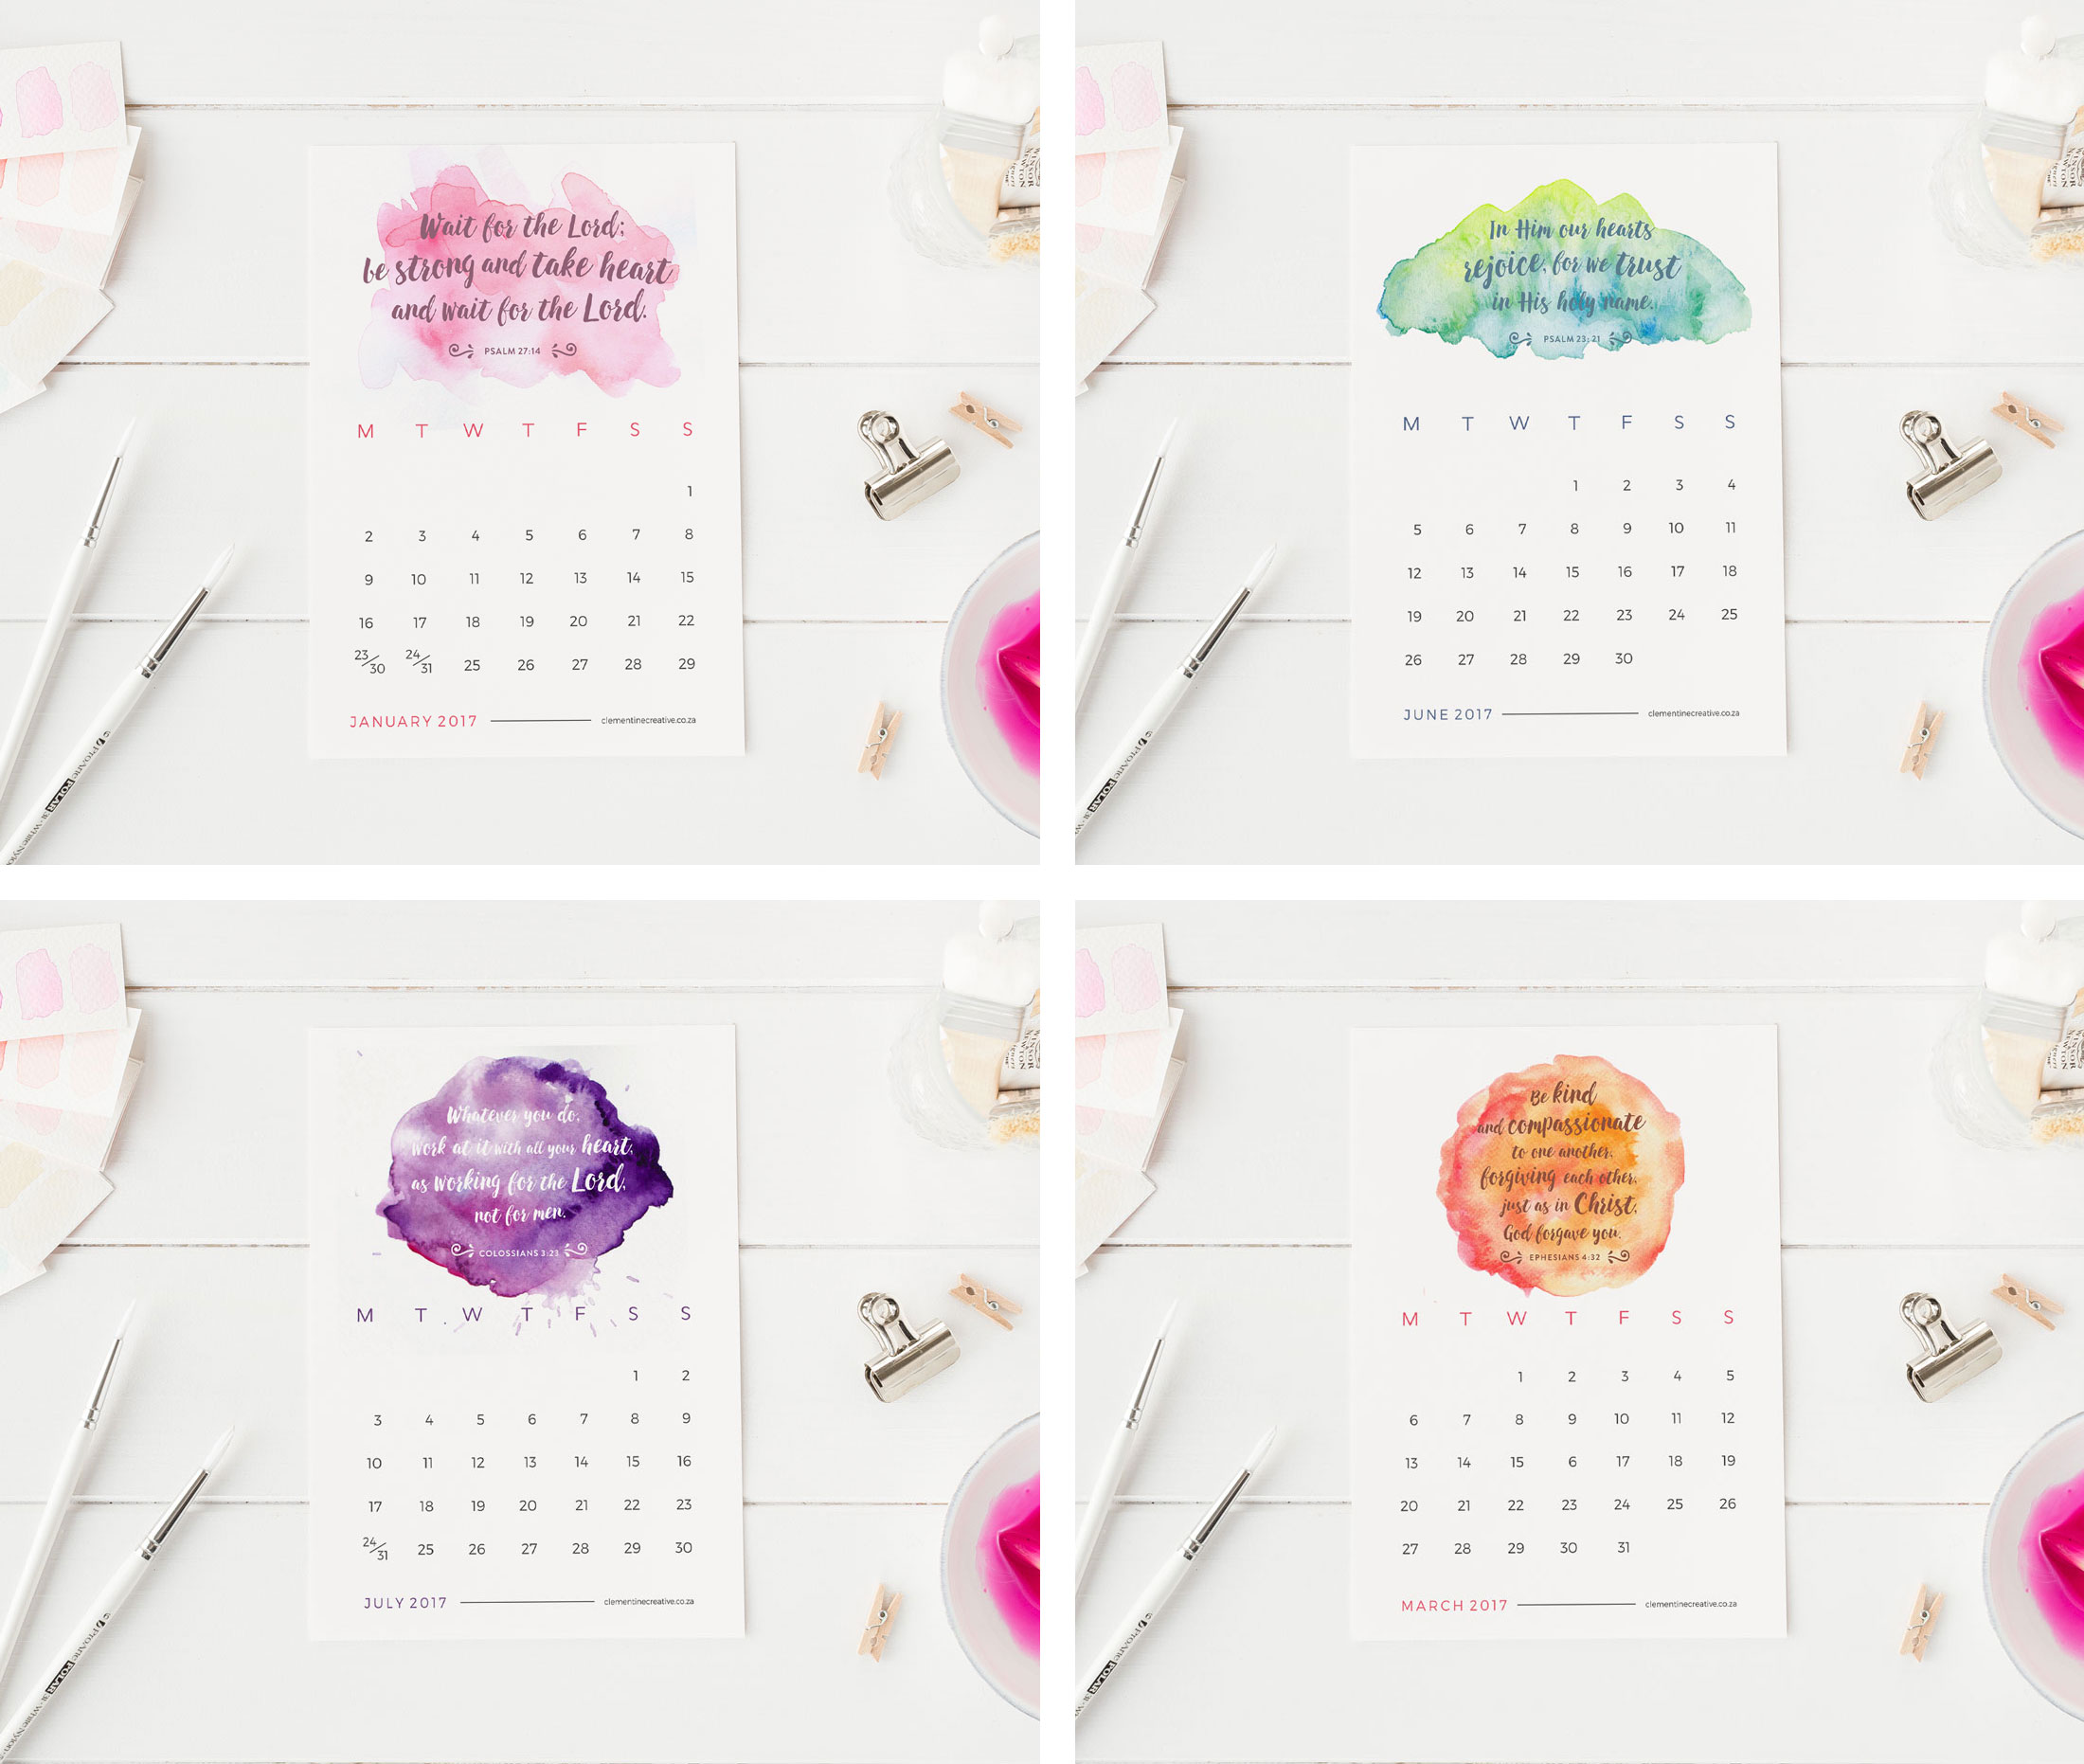 ... Printable Calendars / Printable 2017 Mini Desk Calendar – Bible